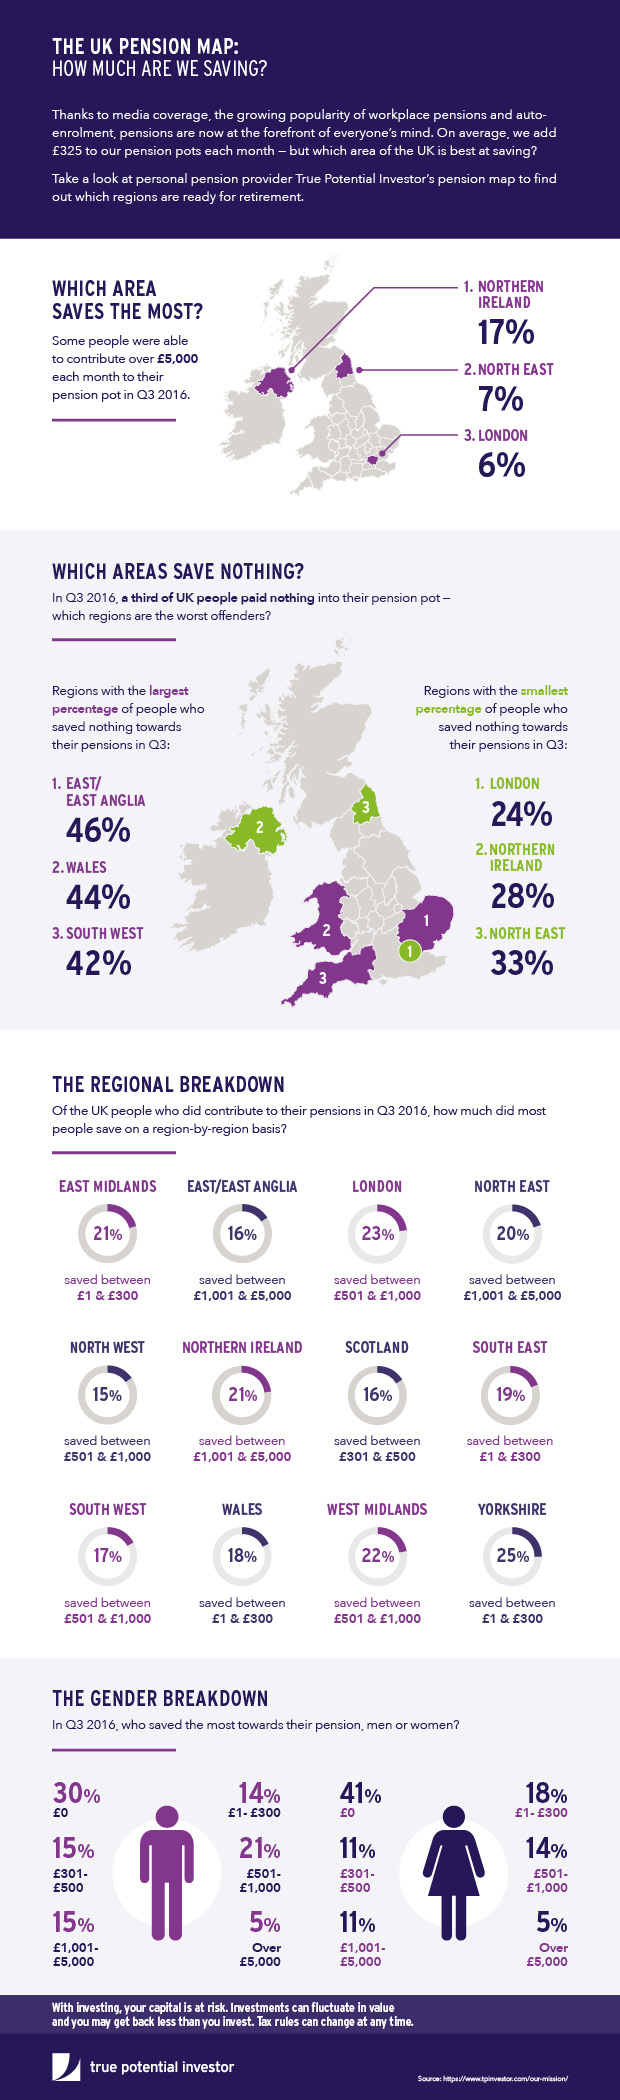 Pensions Map Infographic from Fintech Company: How Much Are We Saving?